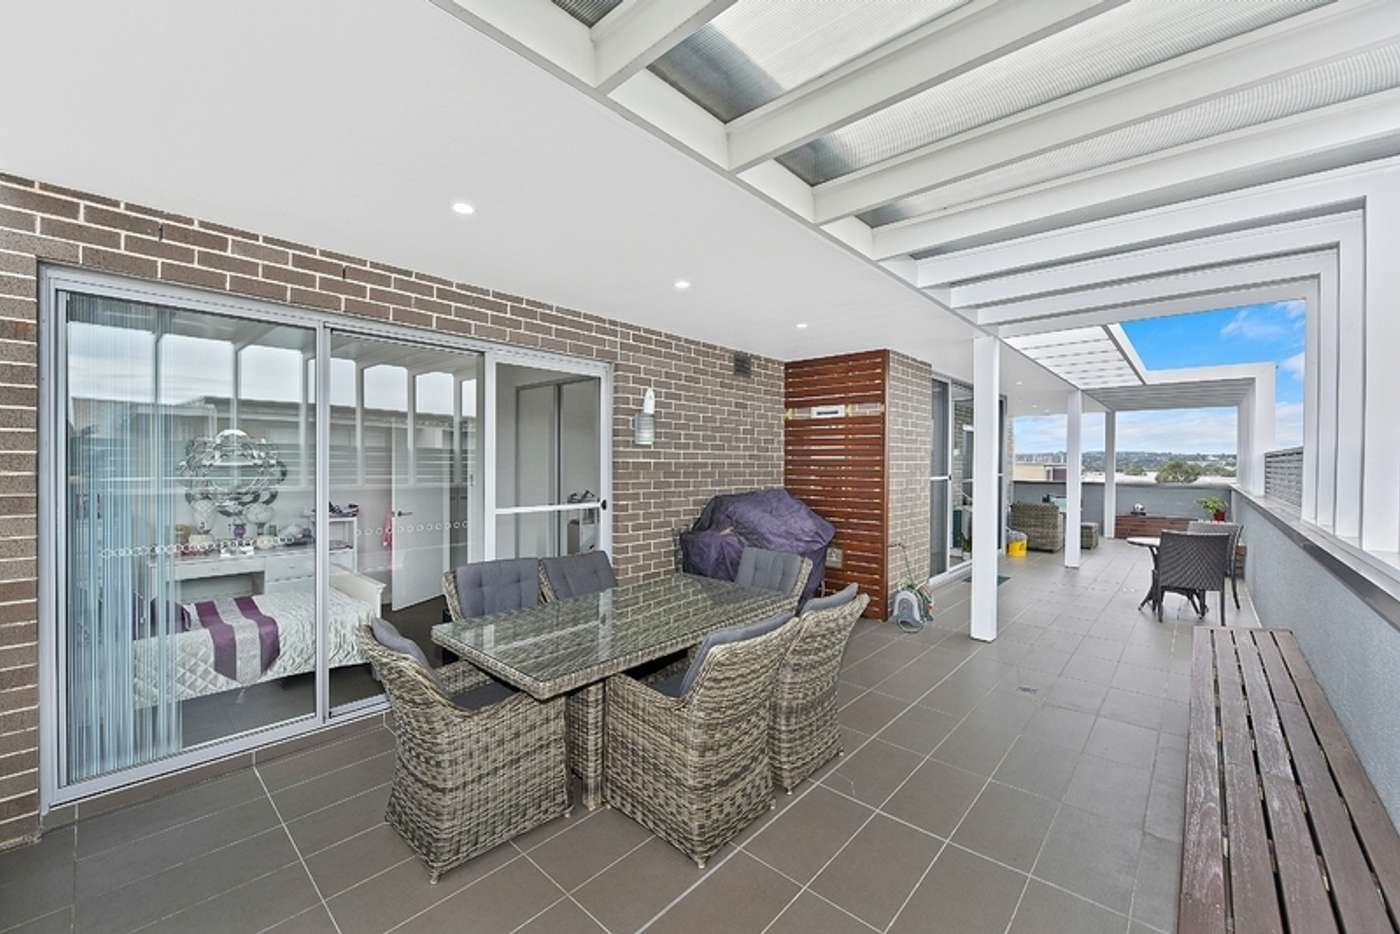 Main view of Homely apartment listing, 61/79 Beaconsfield Street, Silverwater NSW 2128